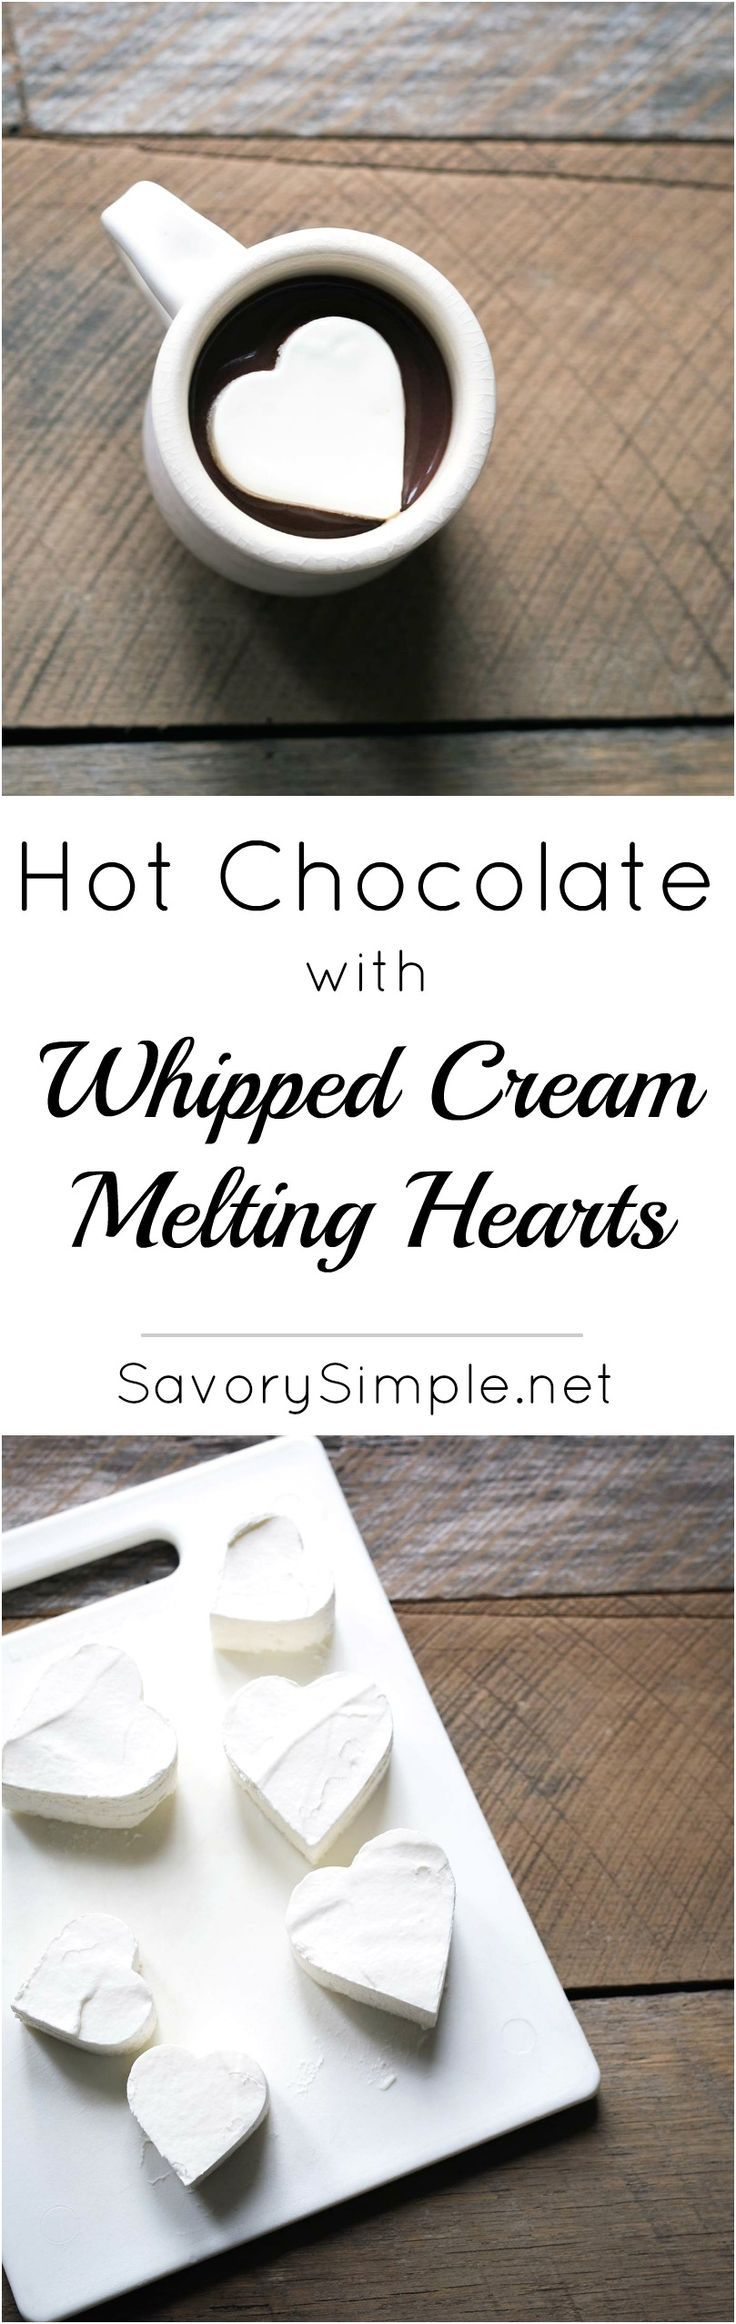 Hot Chocolate with Whipped Cream Melting Hearts = the perfect end to a romantic meal. All you need is a heart-shaped cookie cutter & a few simple ingredients! SavorySimple.net.